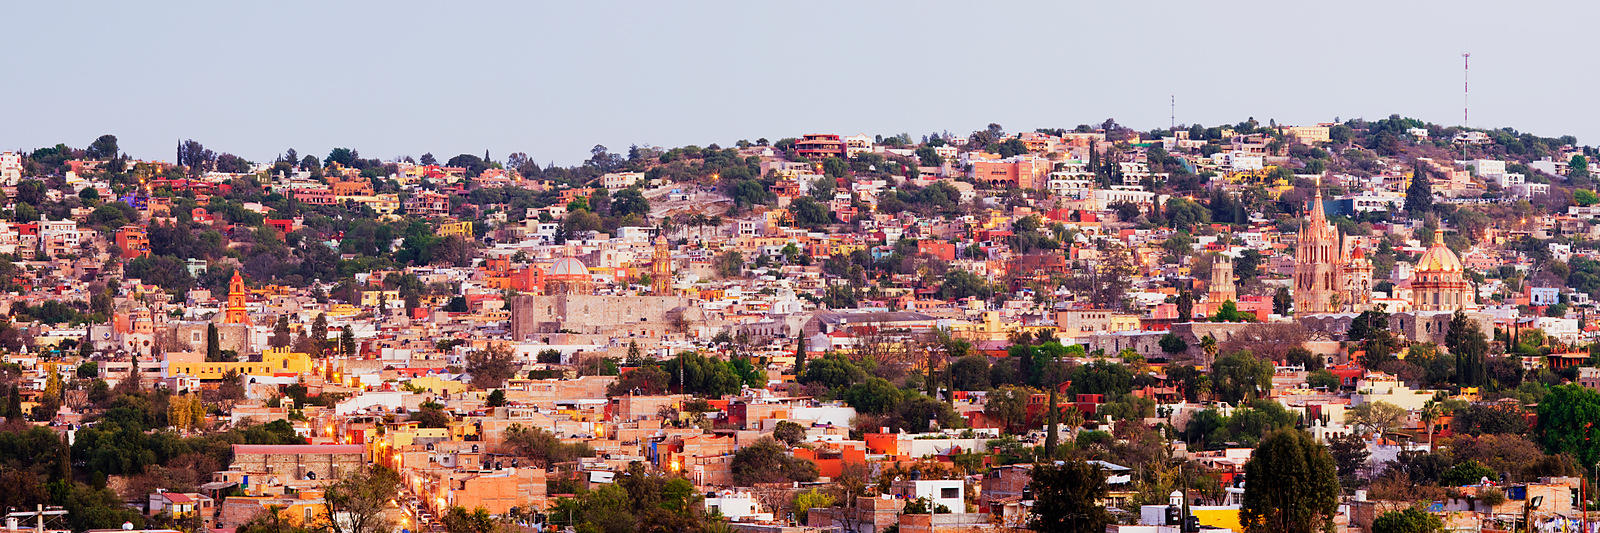 Skyline of San Miguel de Allende at Dusk